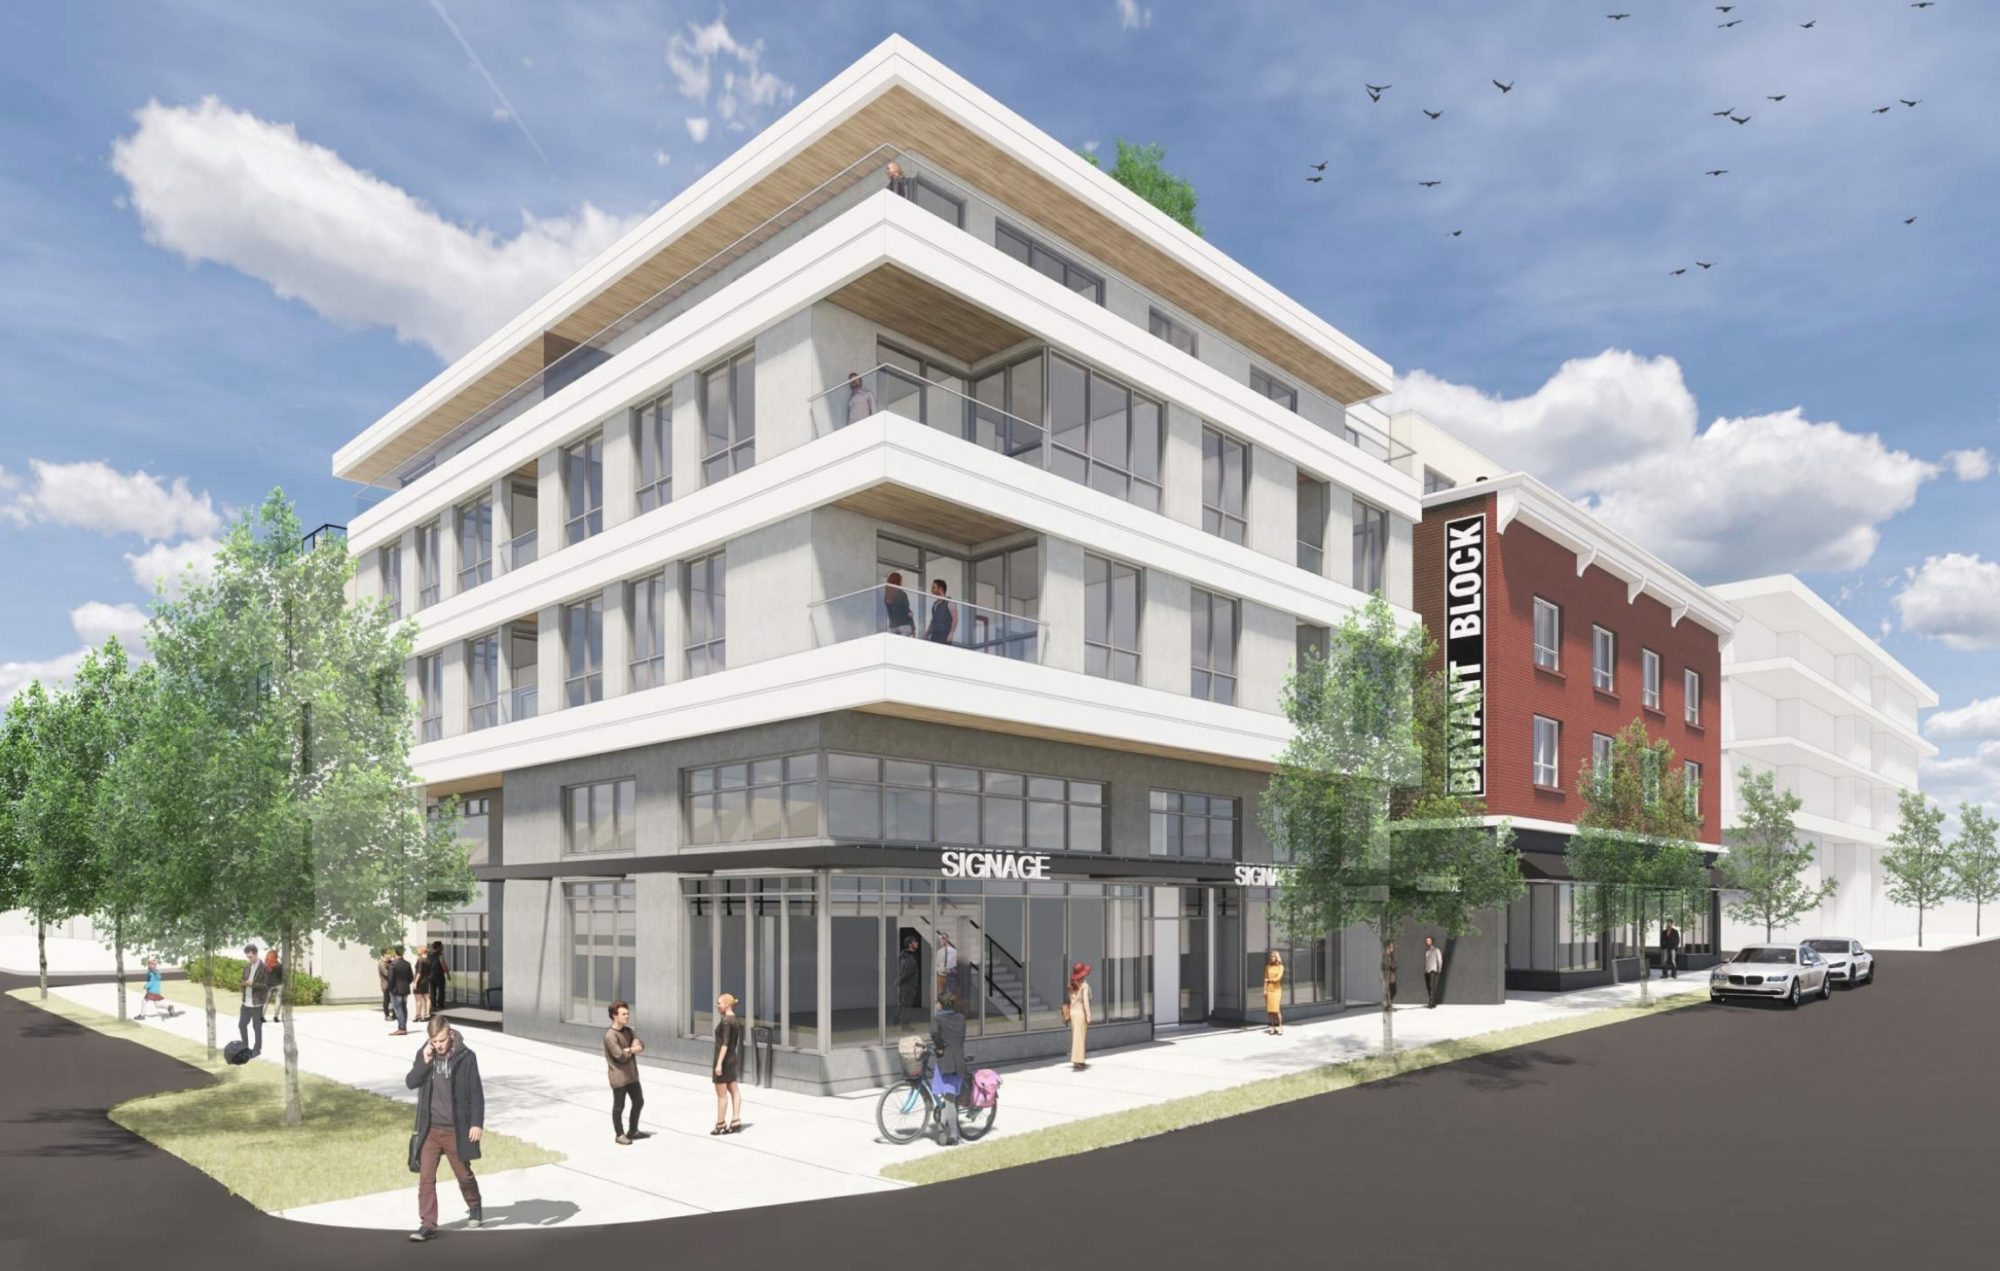 New Development In Vancouver On Main St And 19th Ave Rendering Of Building Design